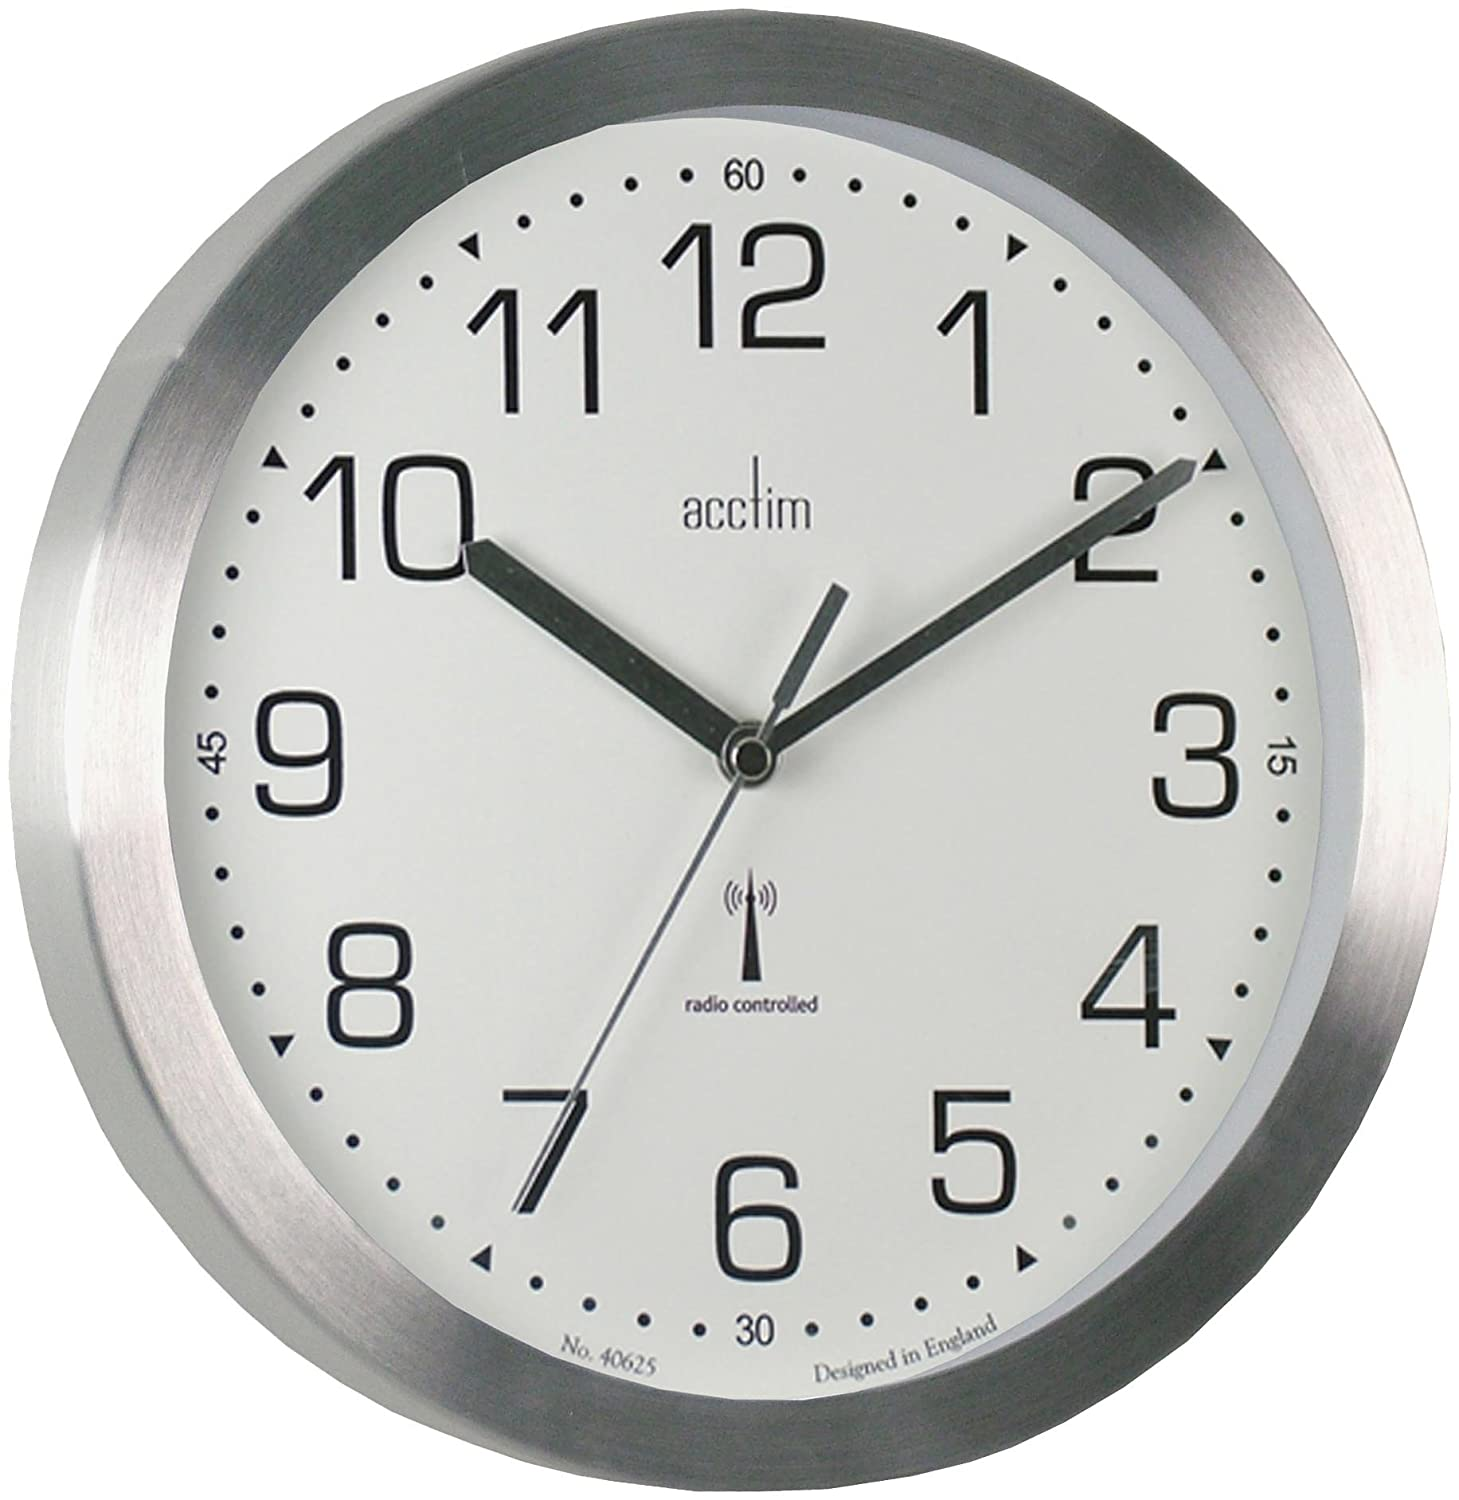 Acctim 74407 mason radio controlled wall clock silver amazon acctim 74407 mason radio controlled wall clock silver amazon kitchen home amipublicfo Image collections